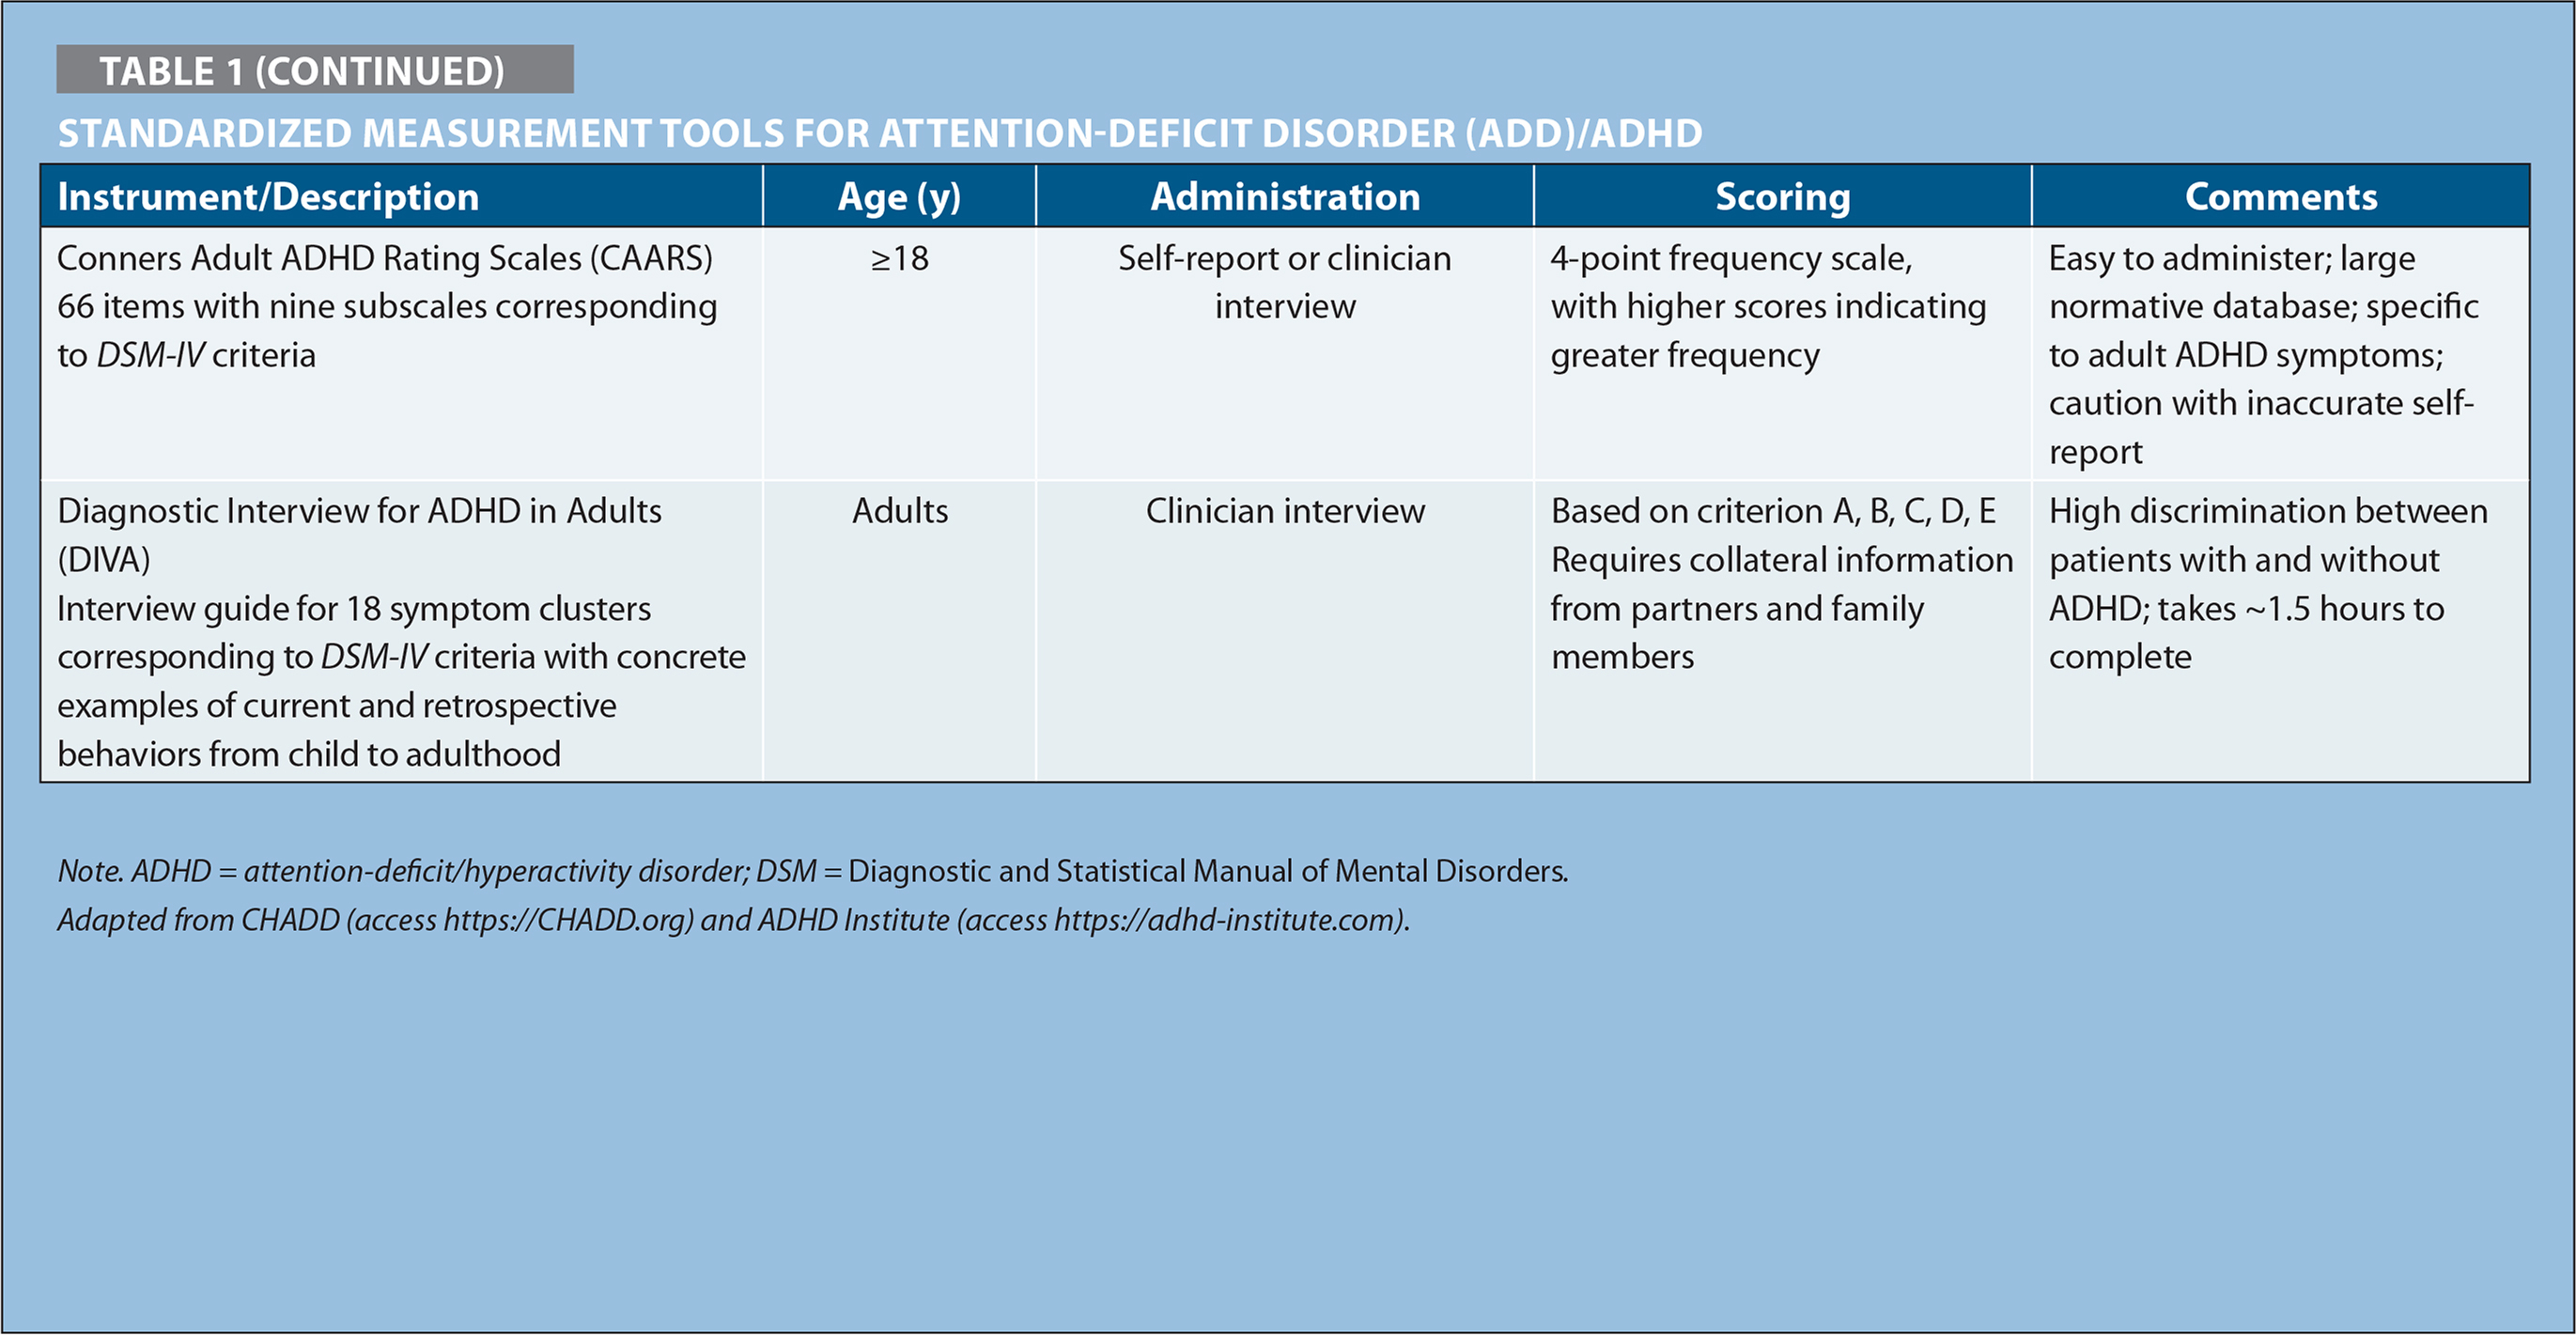 Standardized Measurement Tools for Attention-deficit Disorder (ADD)/ADHD